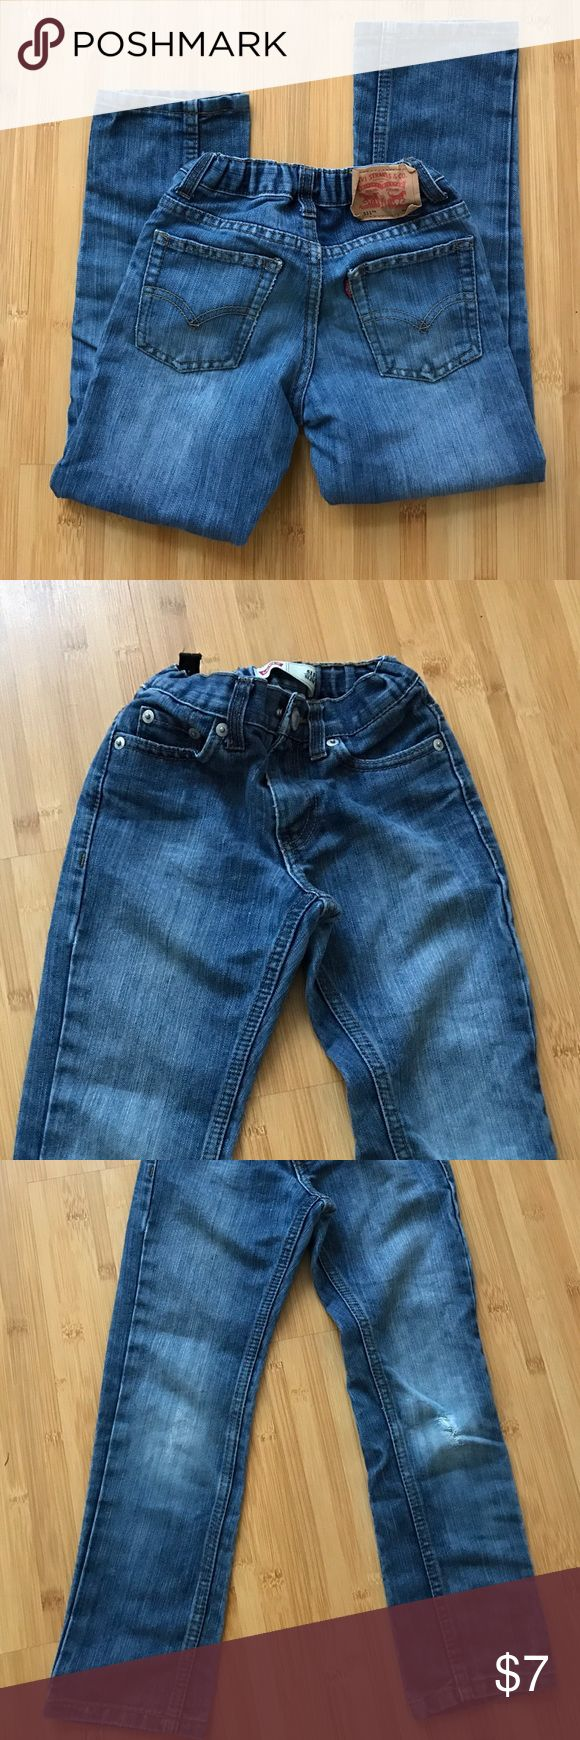 Levi's 511 slim jeans Slim jeans. Inside adjustable waist. VGUC. Small wear in leg by knee. Looks like it was meant to be that way. Levi's Bottoms Jeans